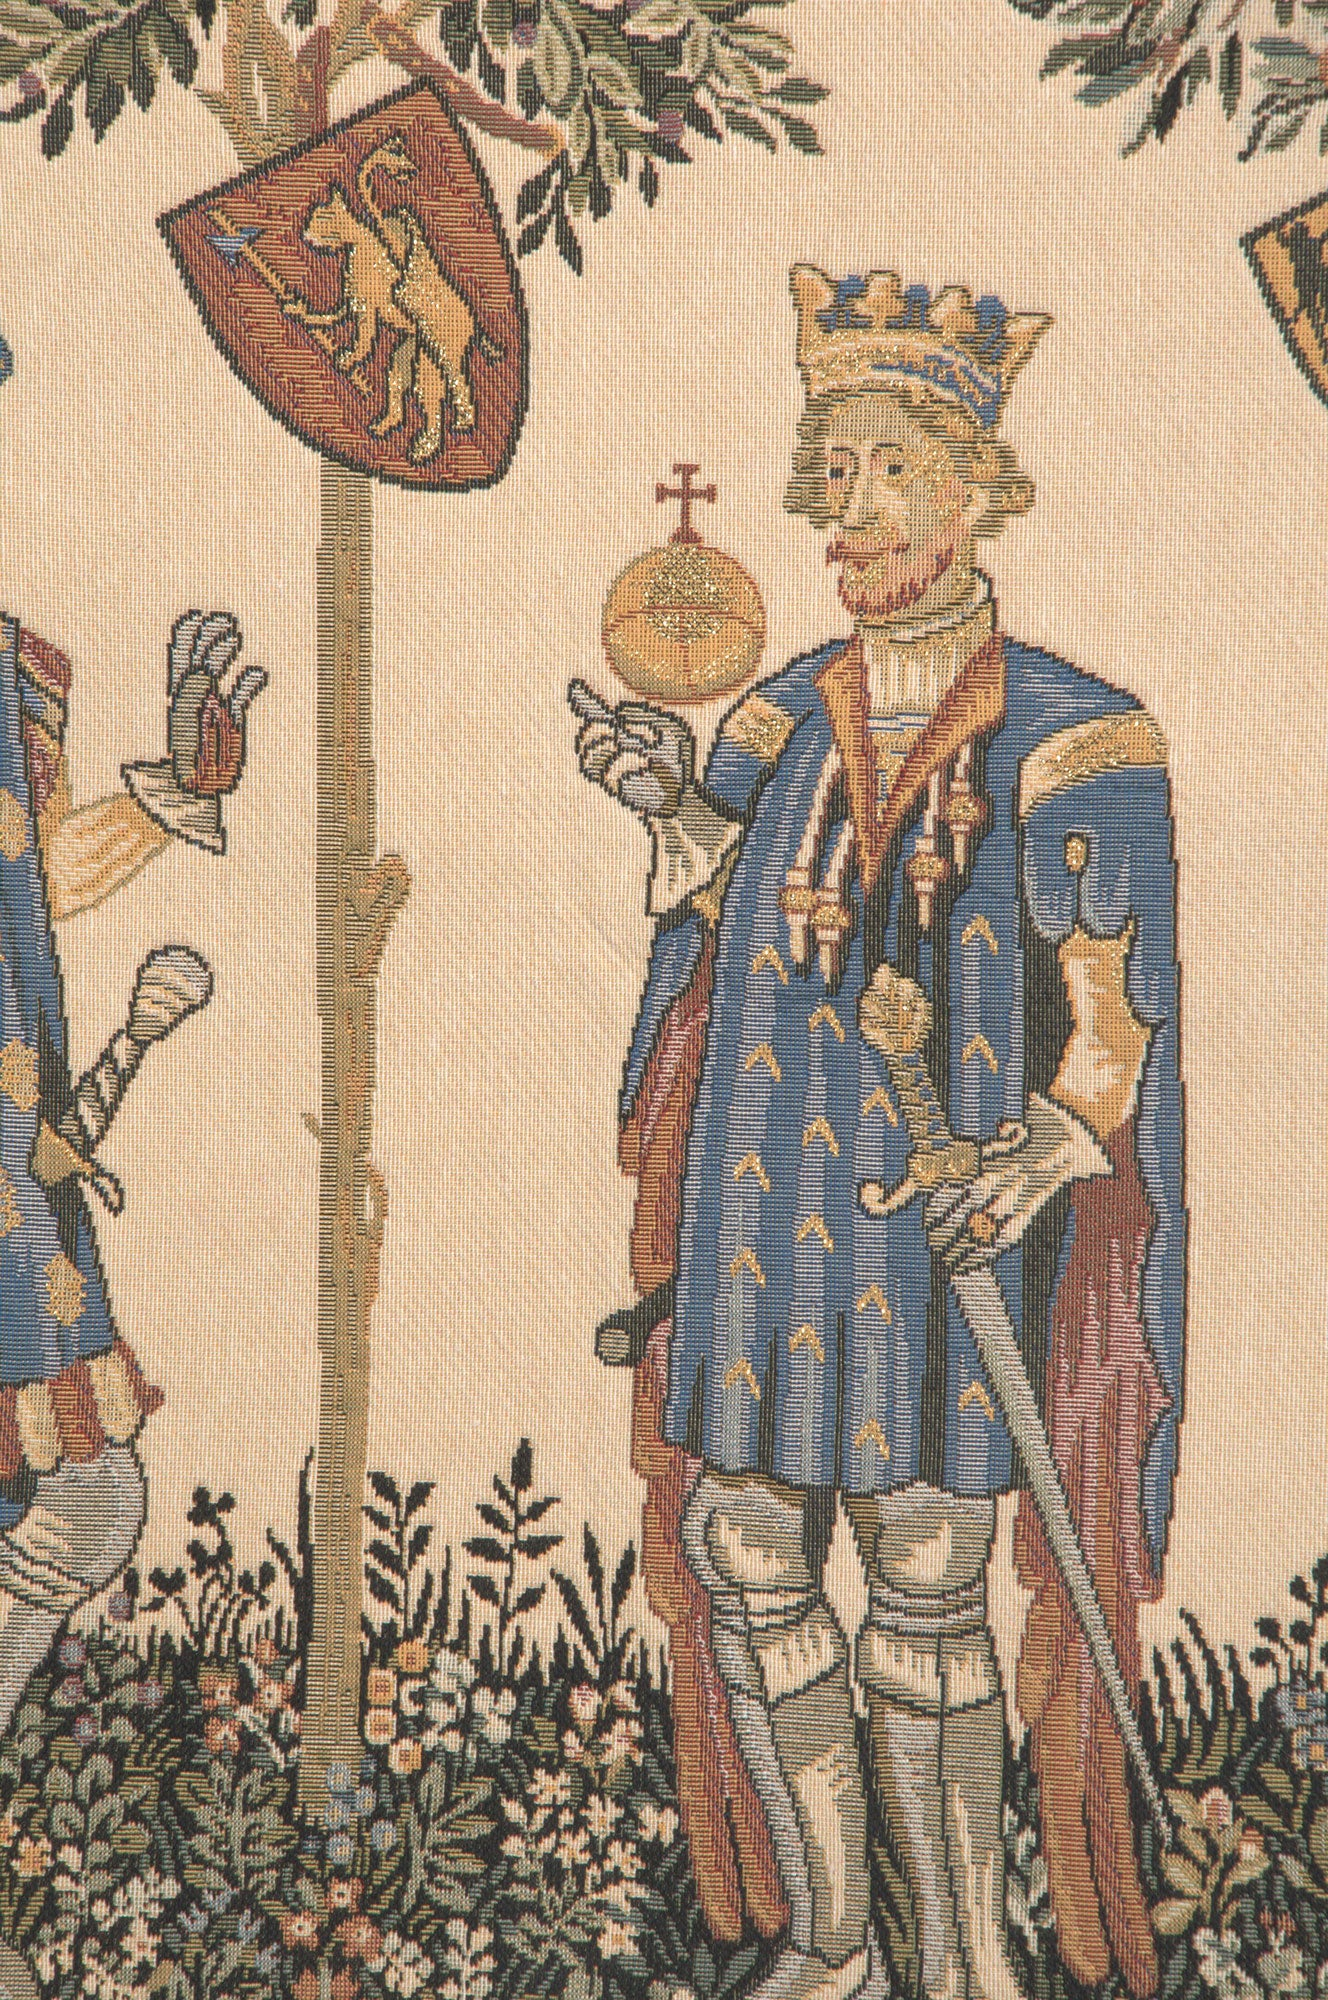 Master of the Castle II European Tapestries